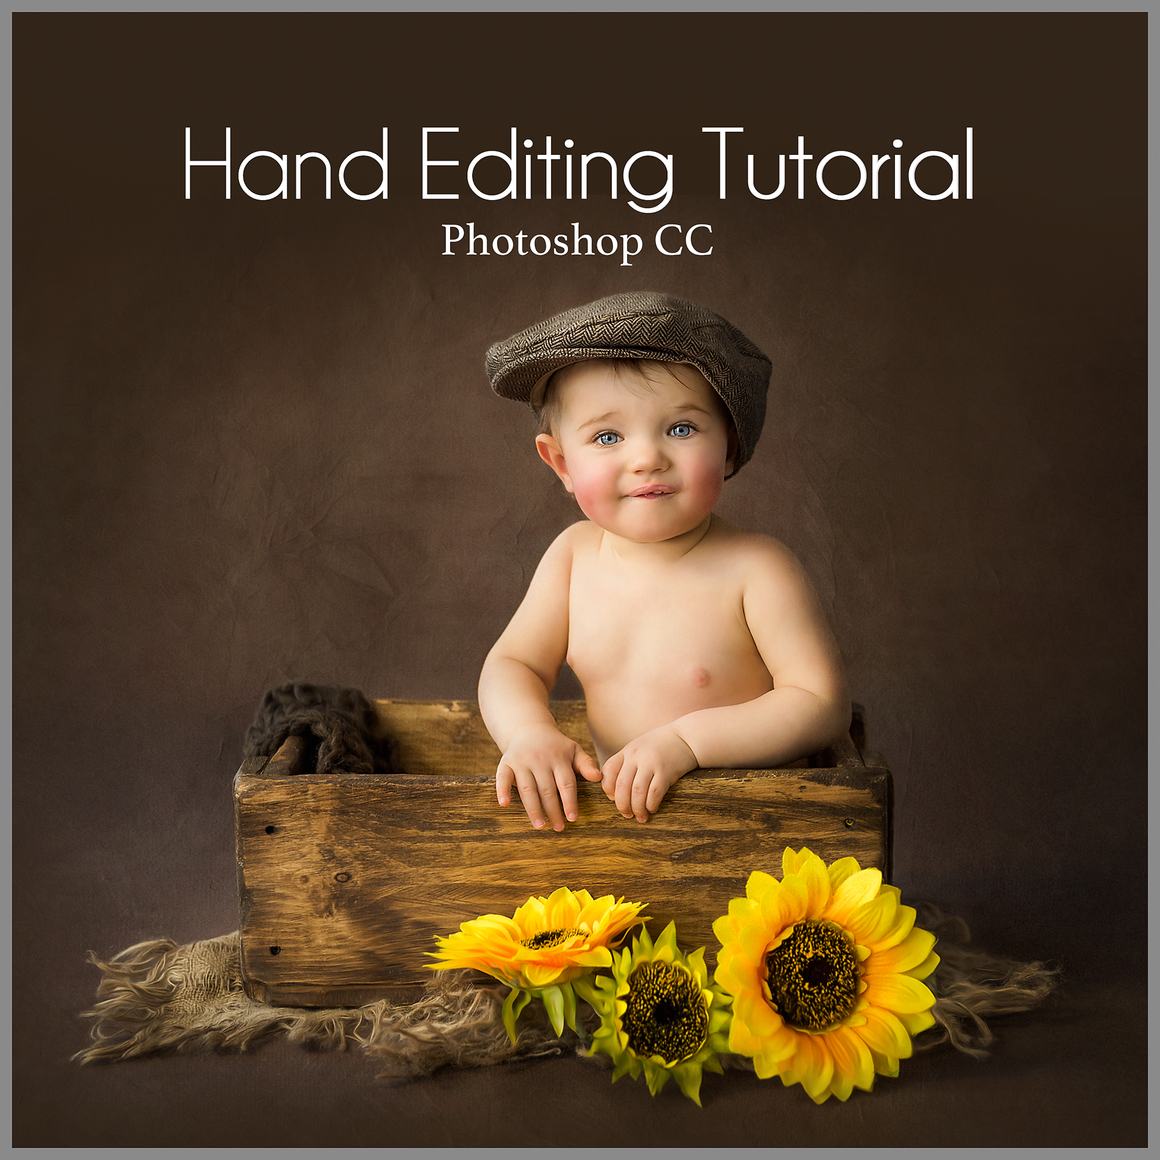 Fine Art Simple Studio Sitter Baby Editing Tutorial  | Photoshop Class - Dream Artsy Actions Tutorials